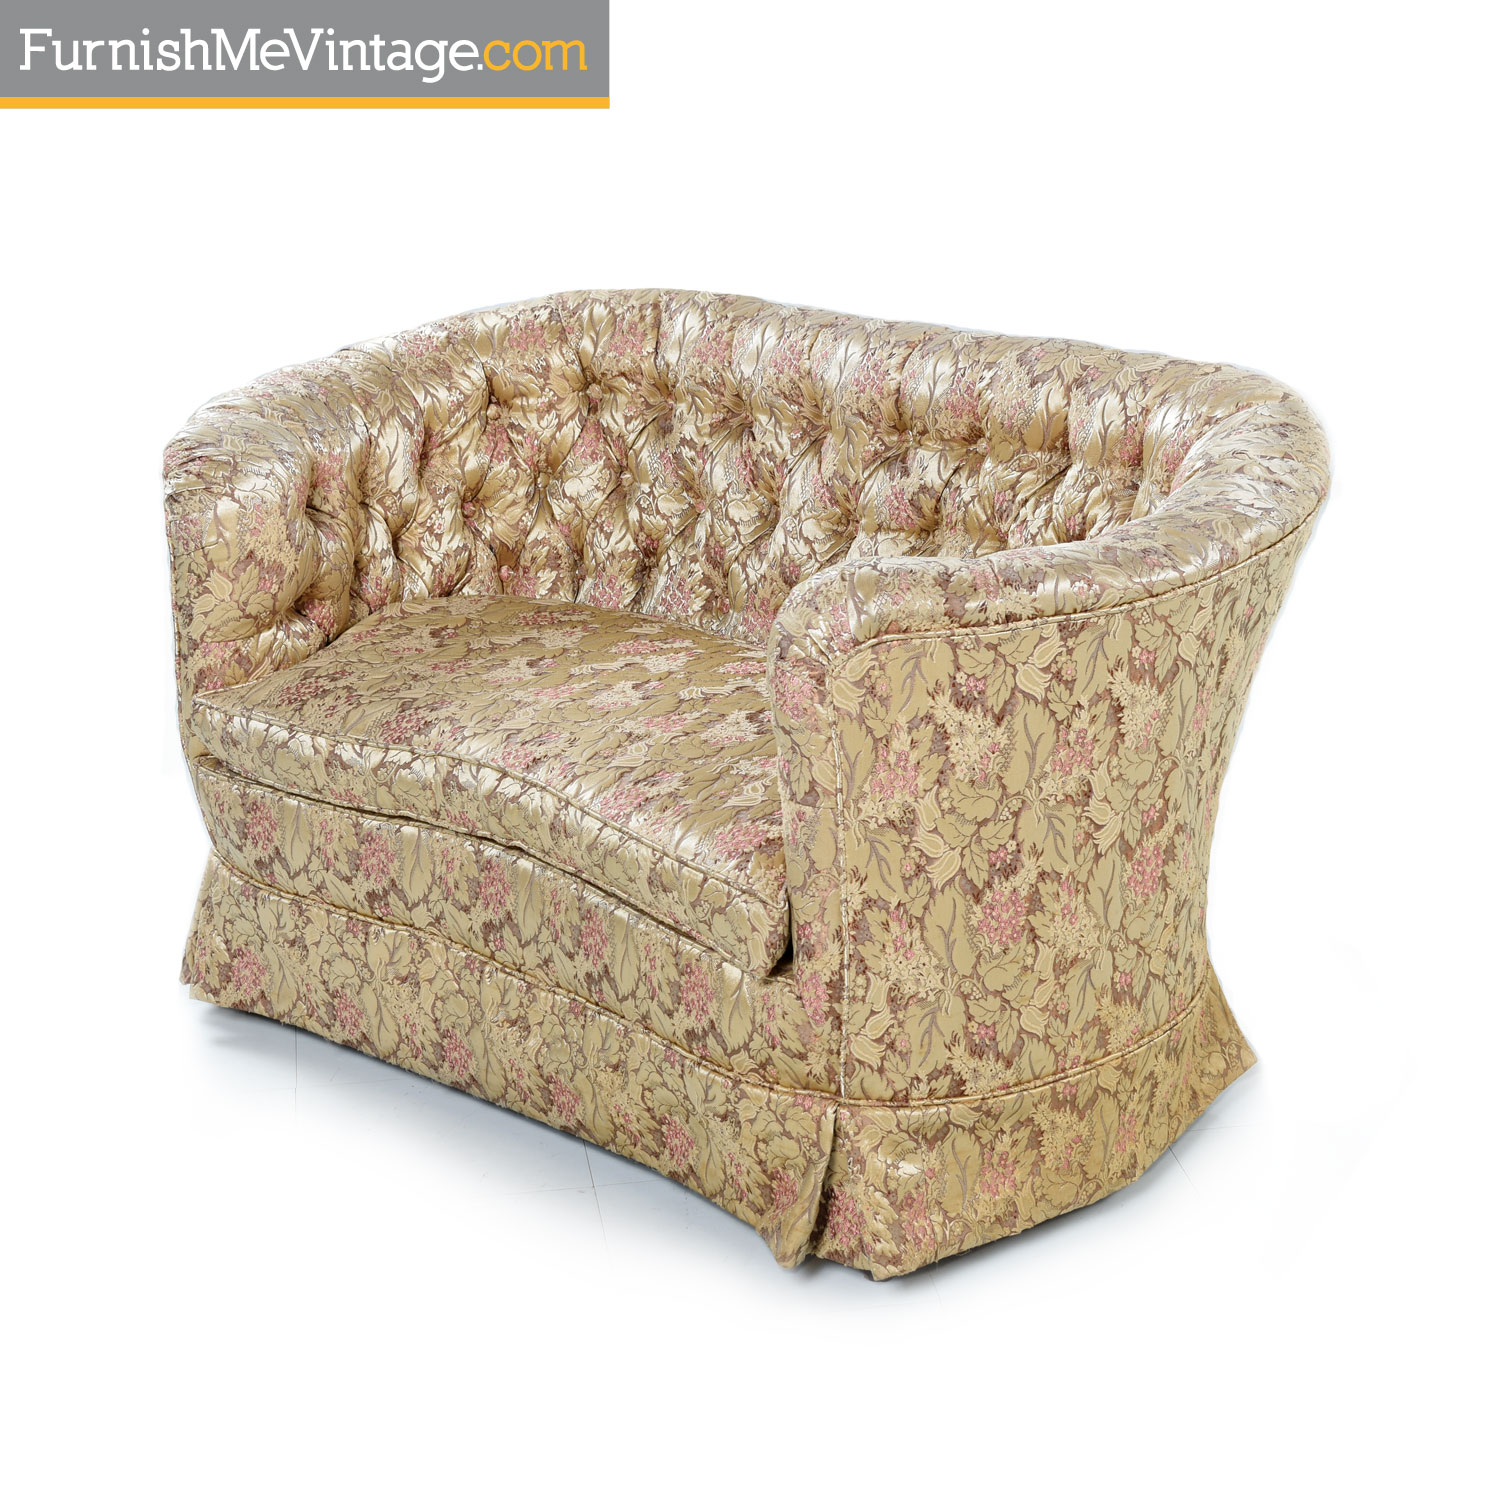 Enjoyable Antique Bohemian Victorian Rose Gold And Beige Floral Settee Caraccident5 Cool Chair Designs And Ideas Caraccident5Info